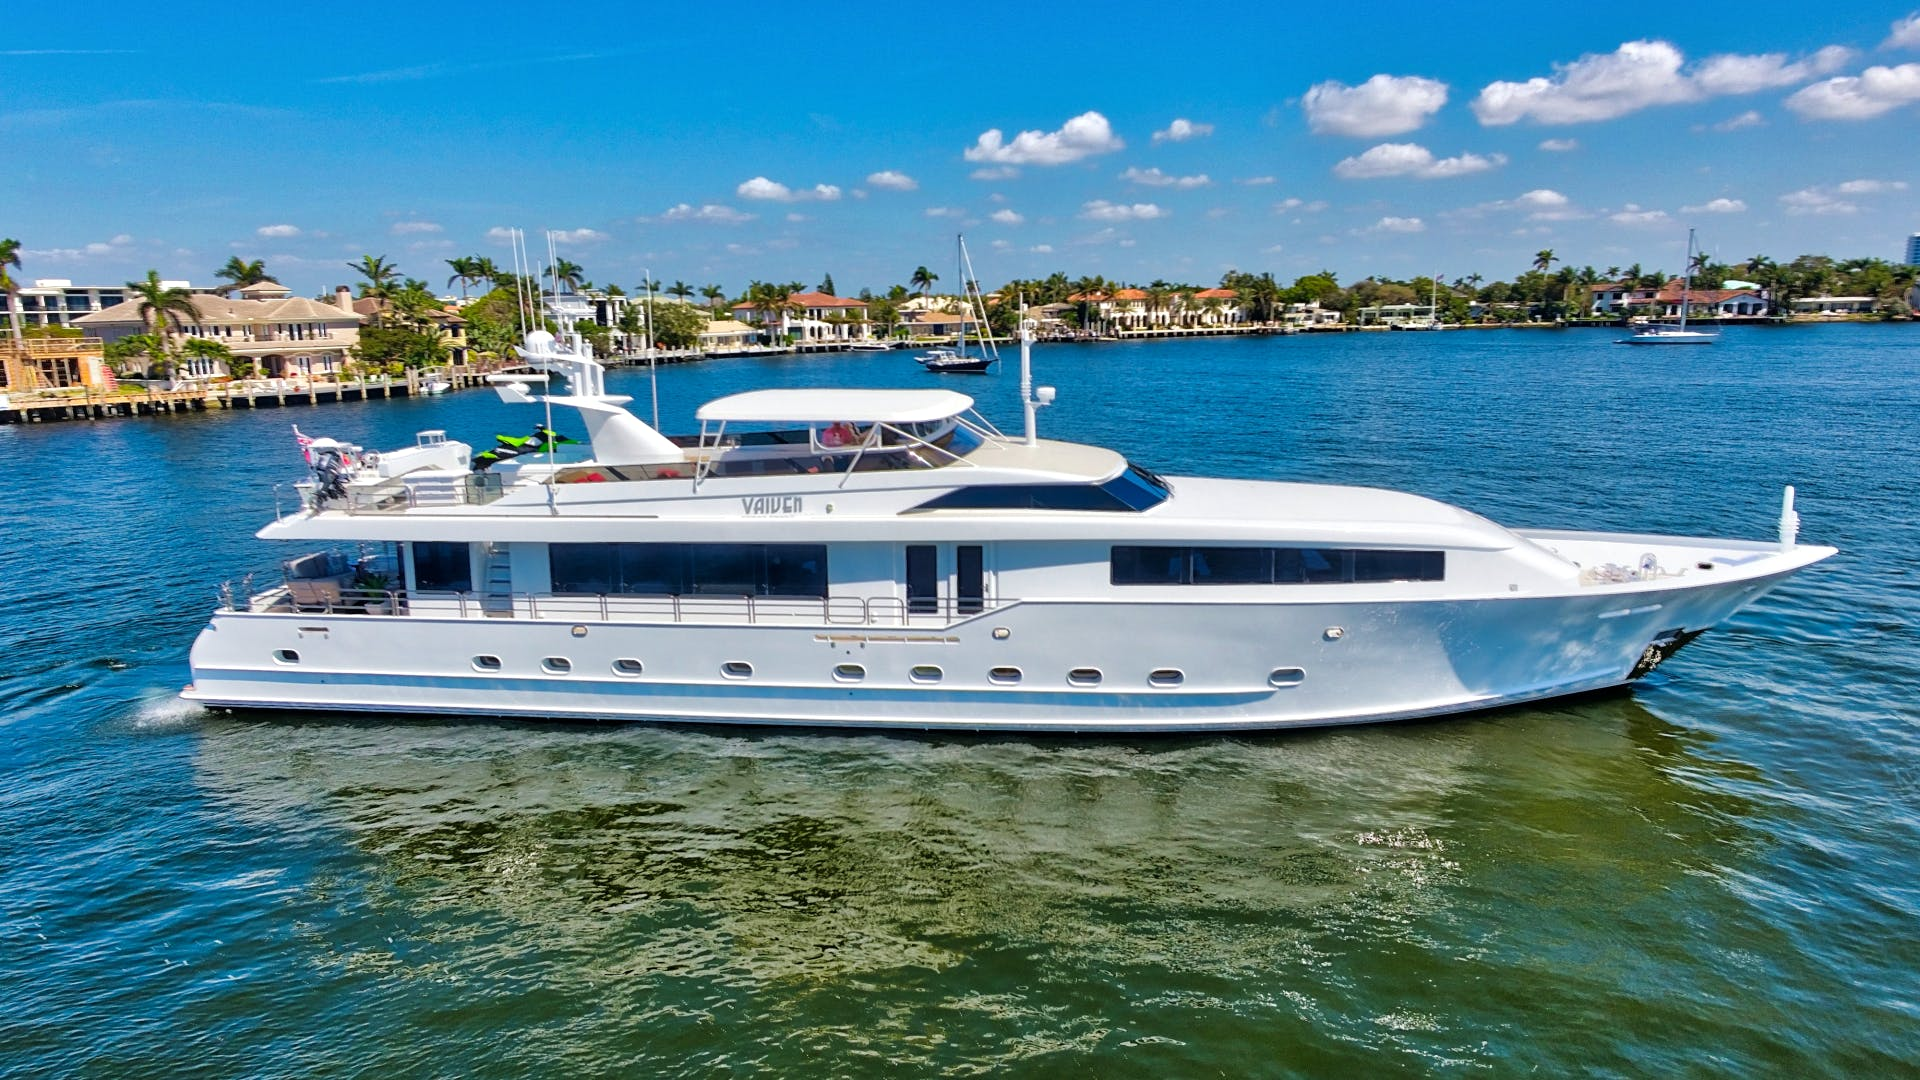 VAIVEN Yacht for Sale | 114 Broward 1995